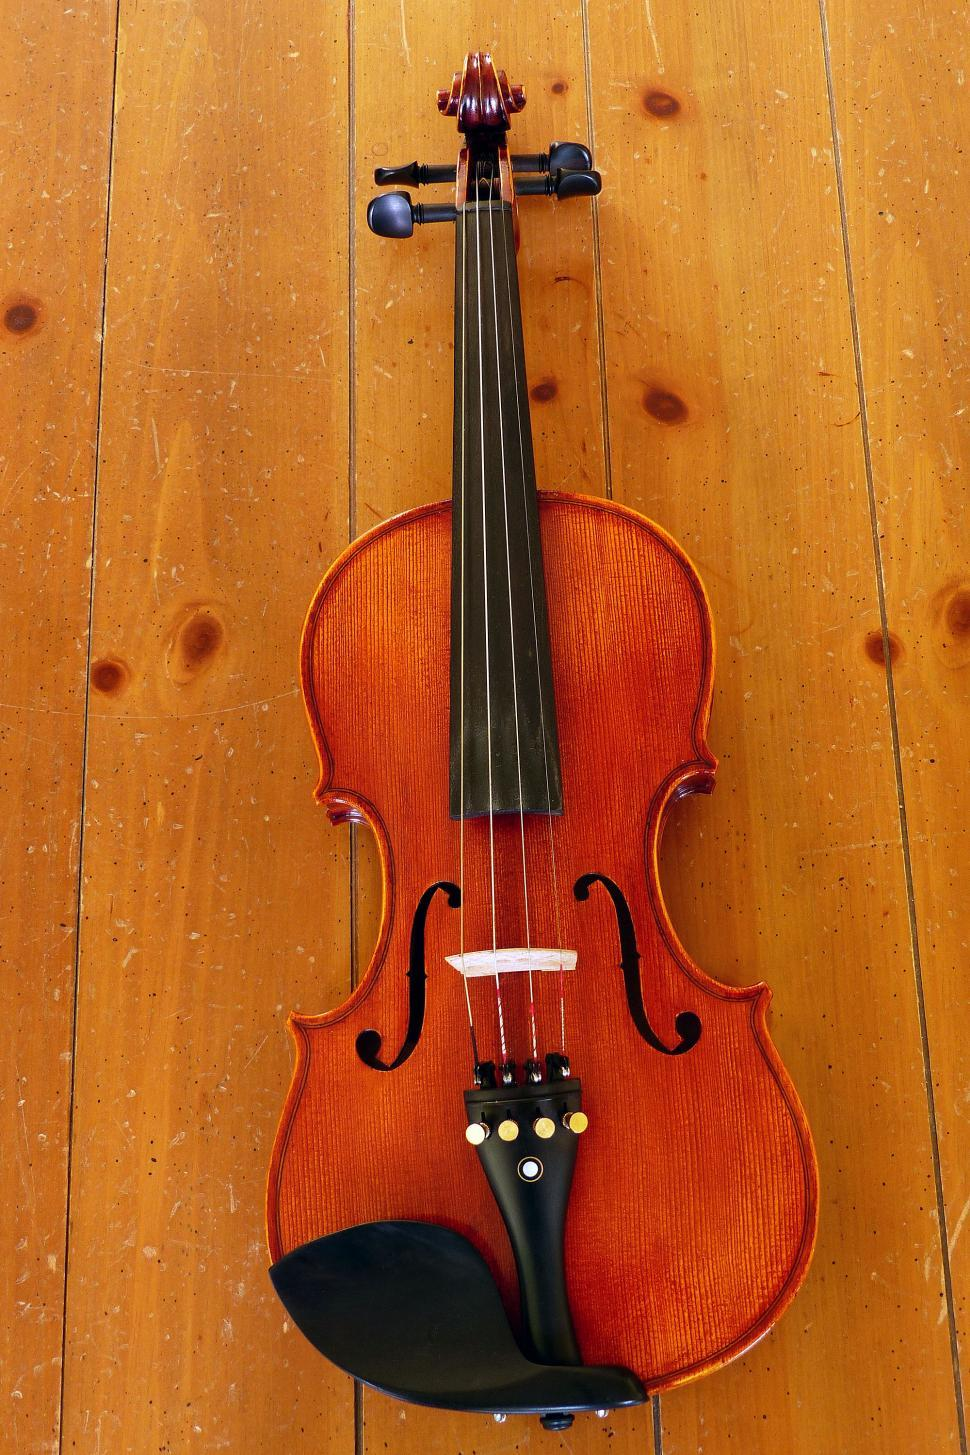 Download Free Stock HD Photo of Violin On Table Online